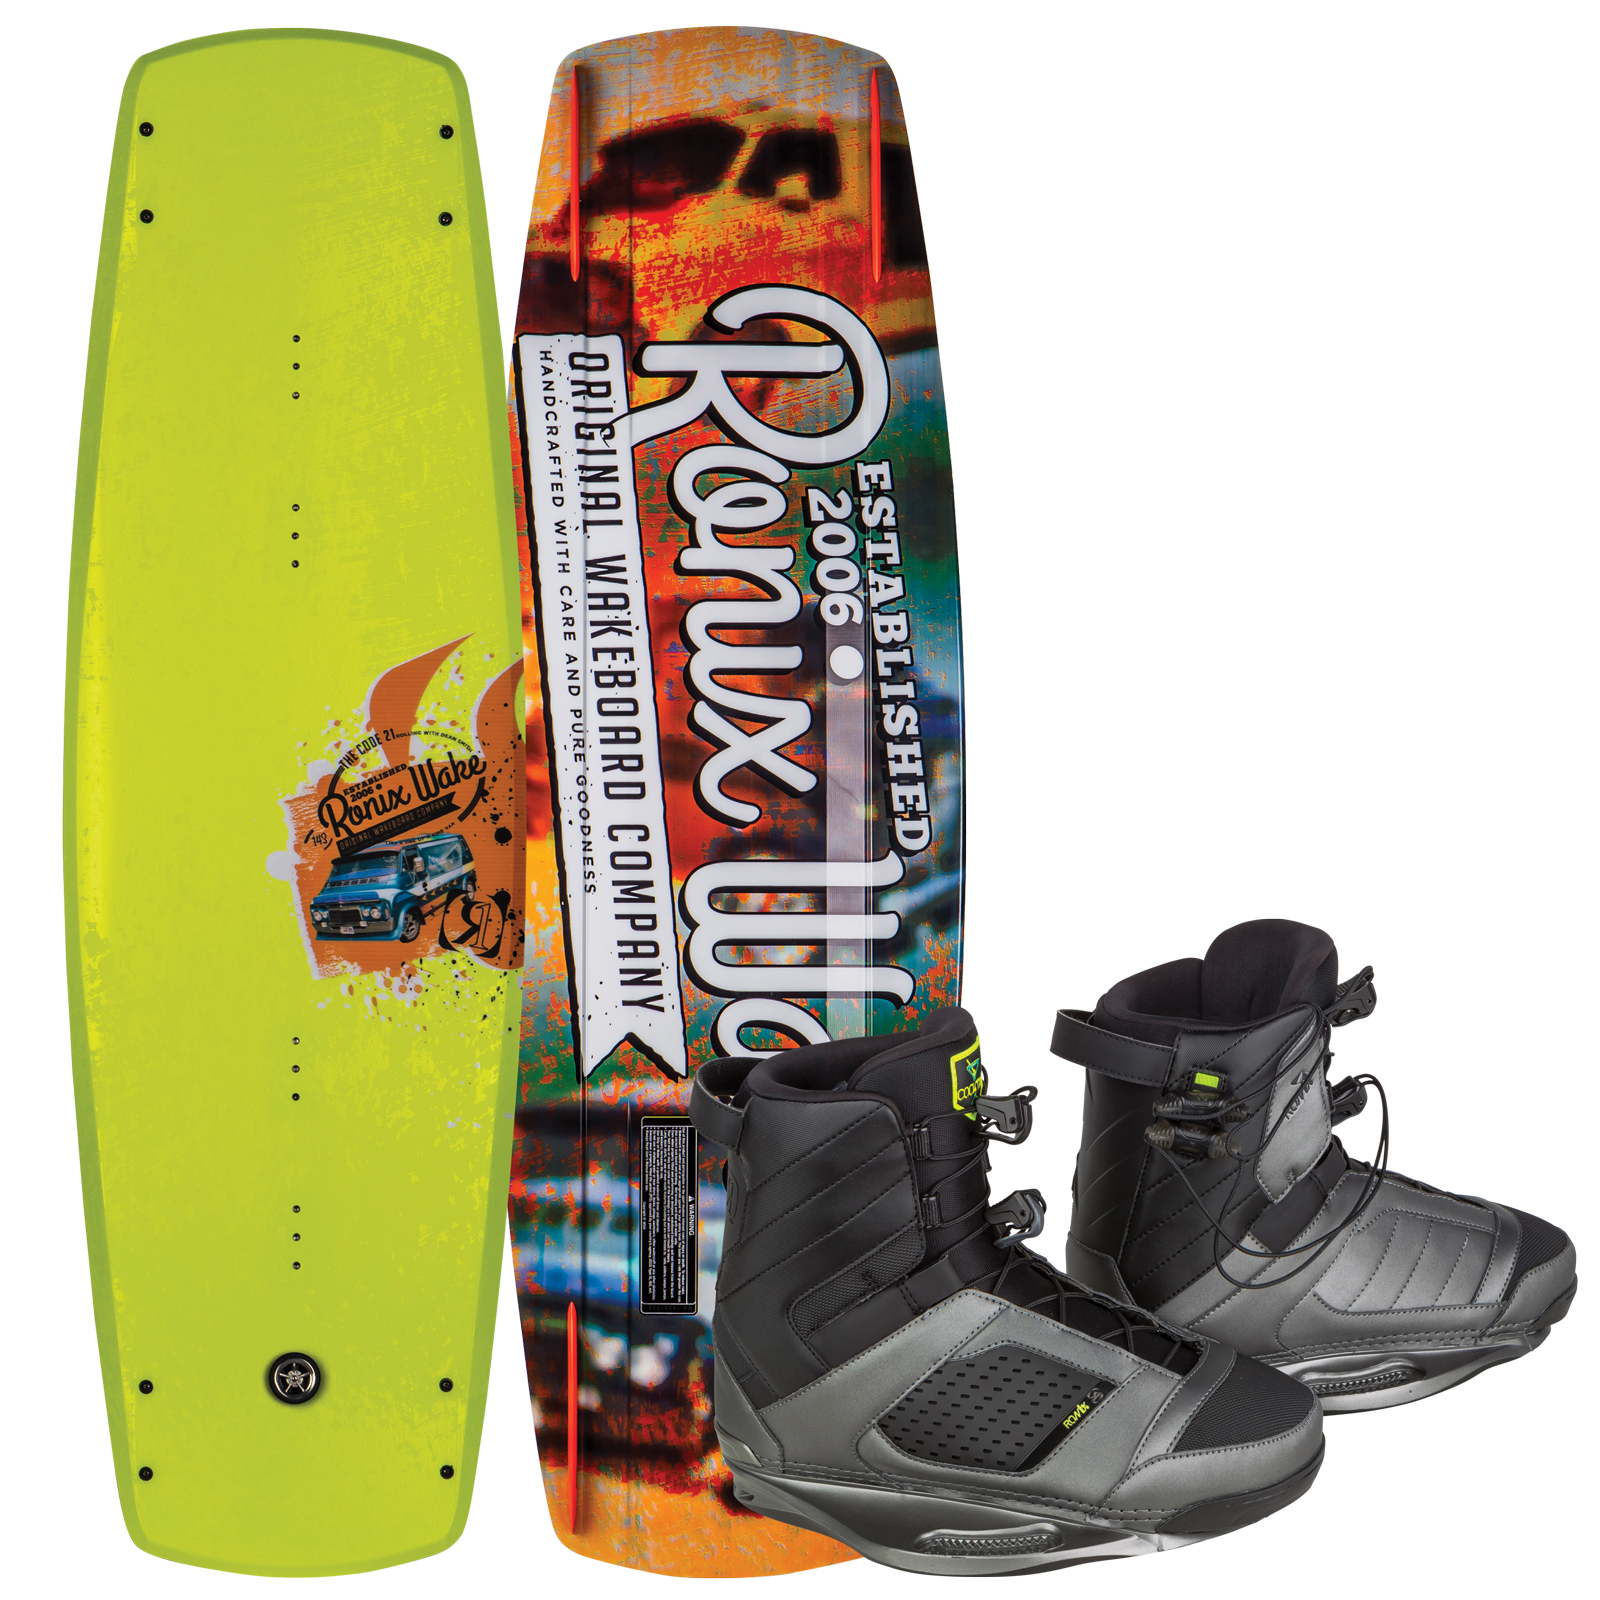 CODE 21 143 W/ COCKTAIL PACKAGE RONIX 2017